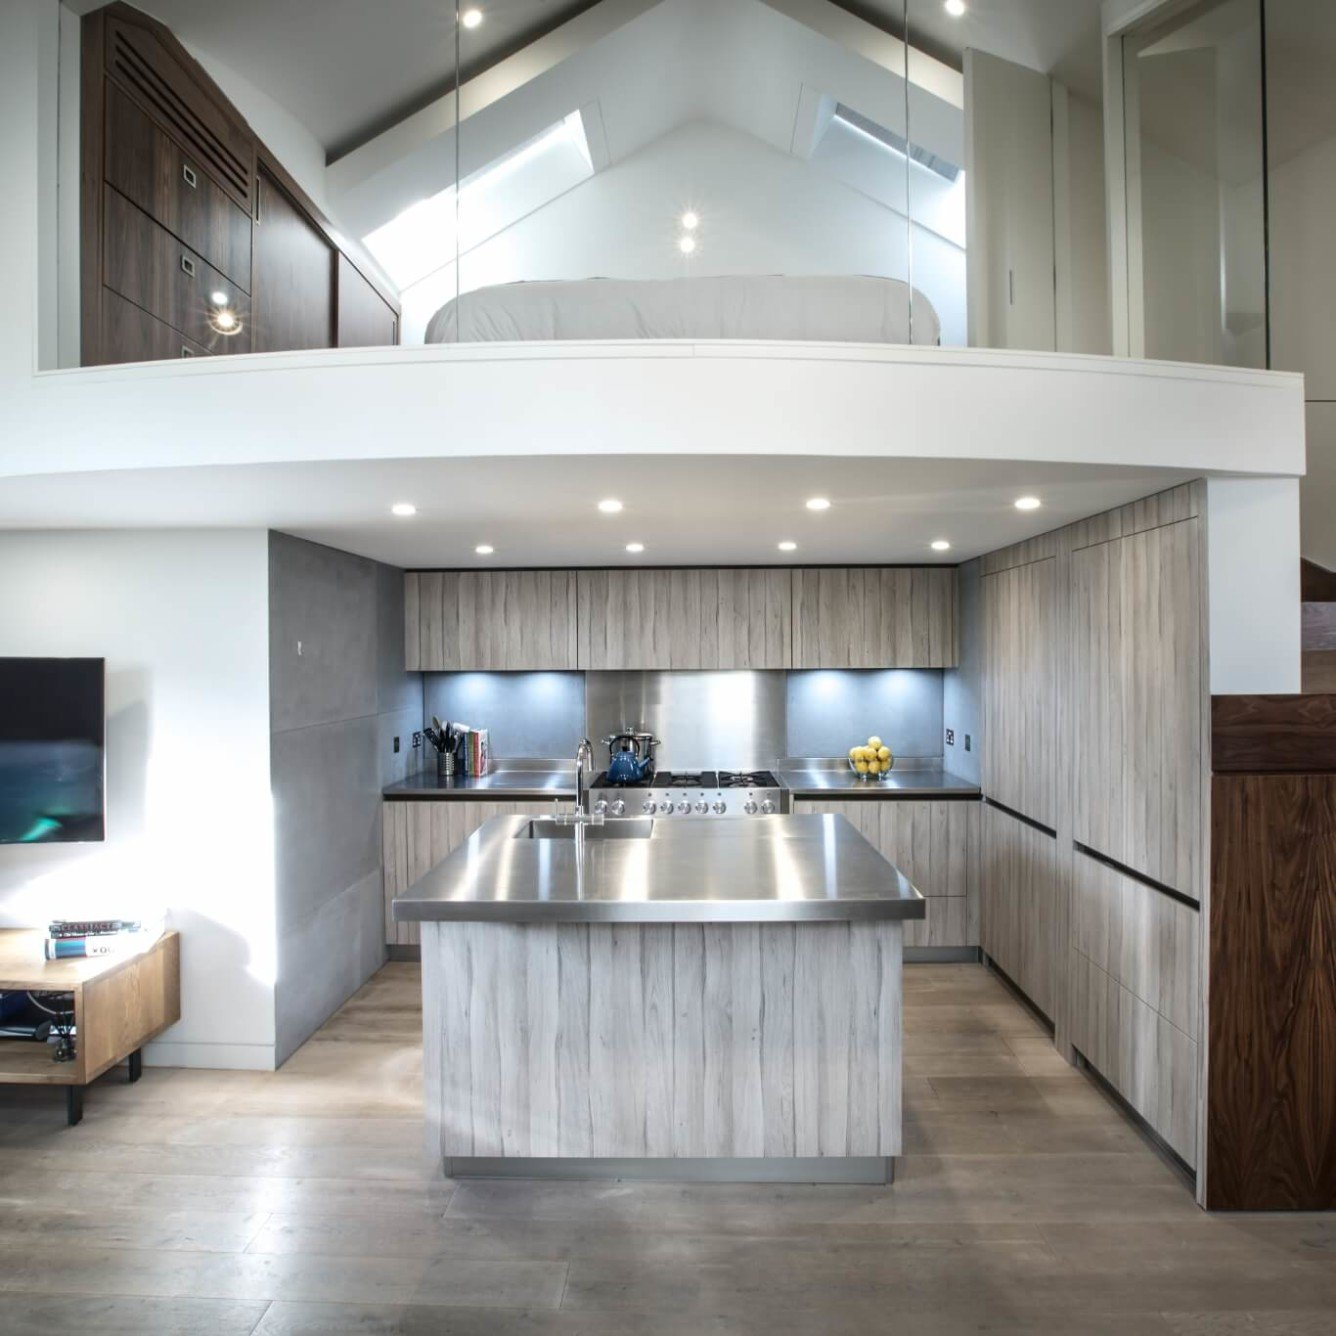 Penthouse in St Johns Wood - mezzanine with master bedroom and bespoke kitchen underneath